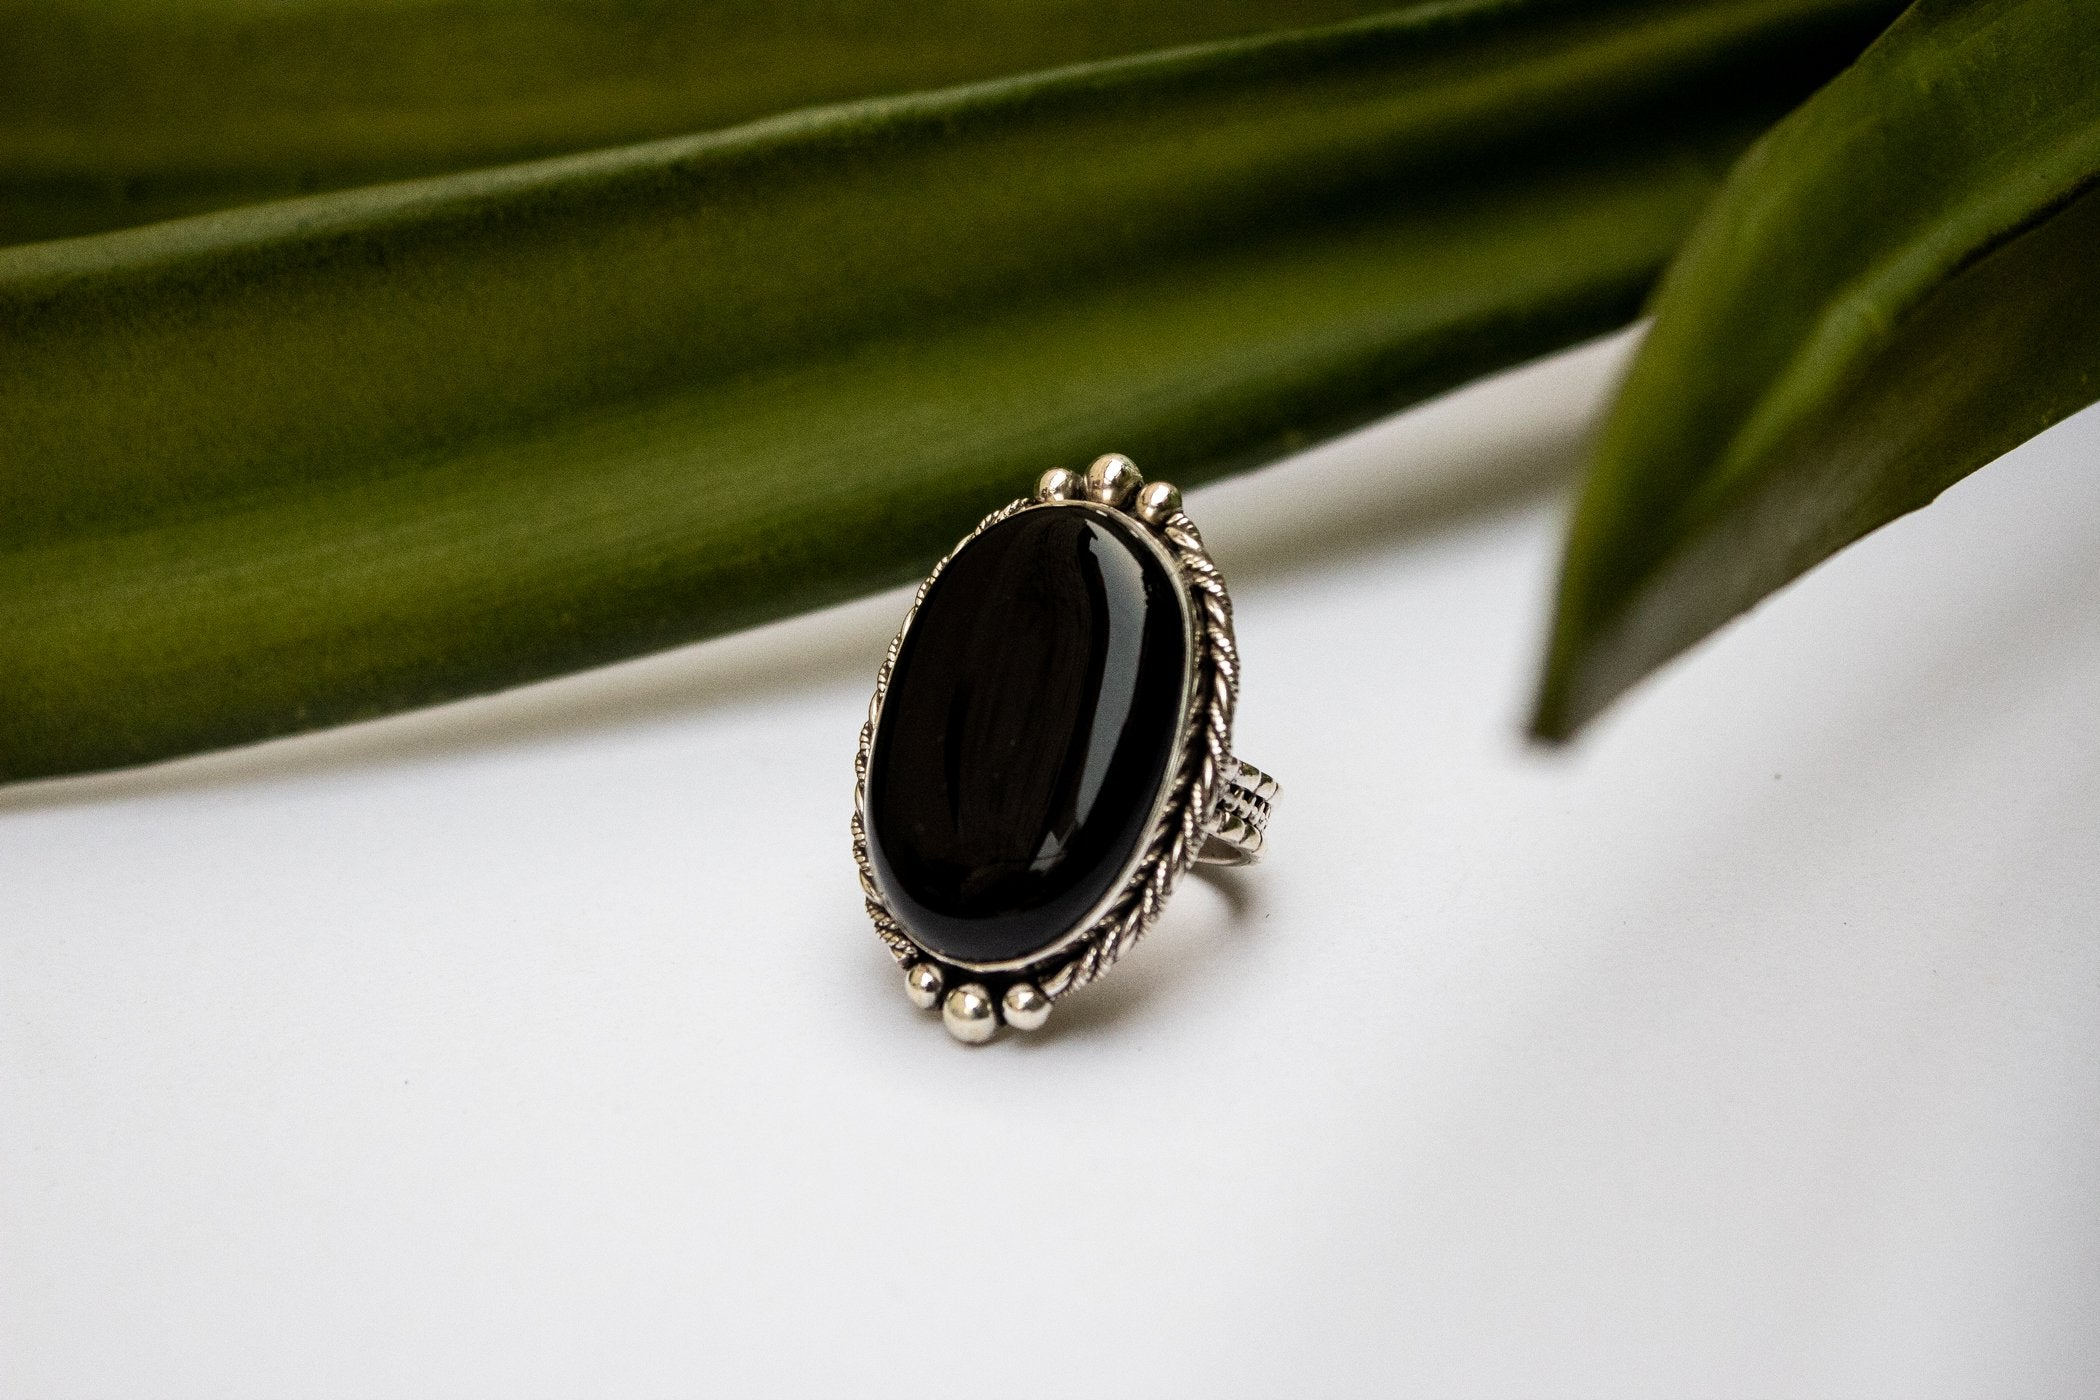 Black Onyx Ring 925 Sterling Silver AR-3004 - Its Ambra